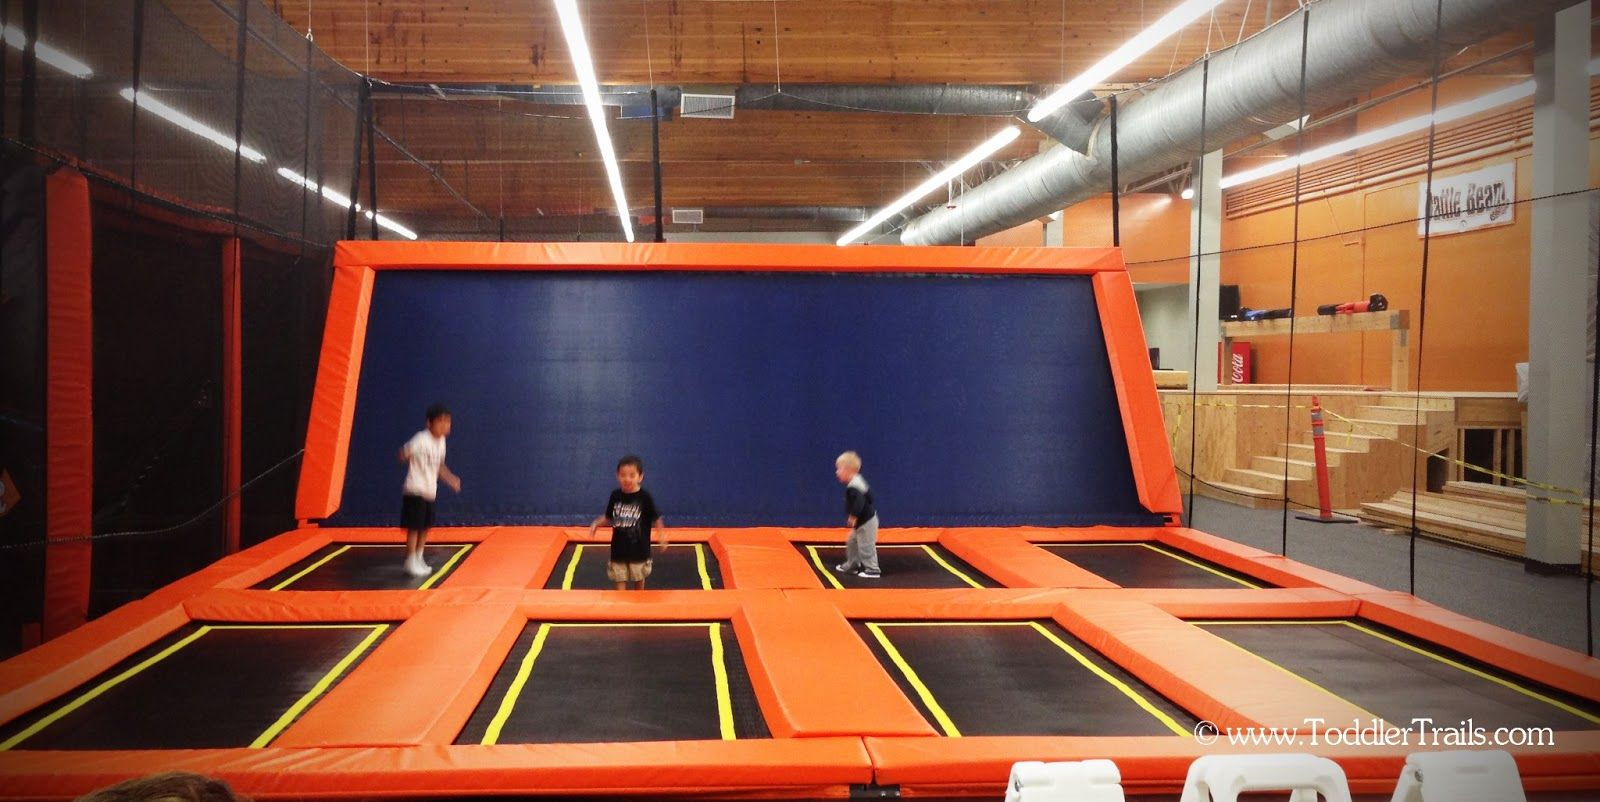 Big Air Trampoline Trampoline park, Trampoline, Backyard